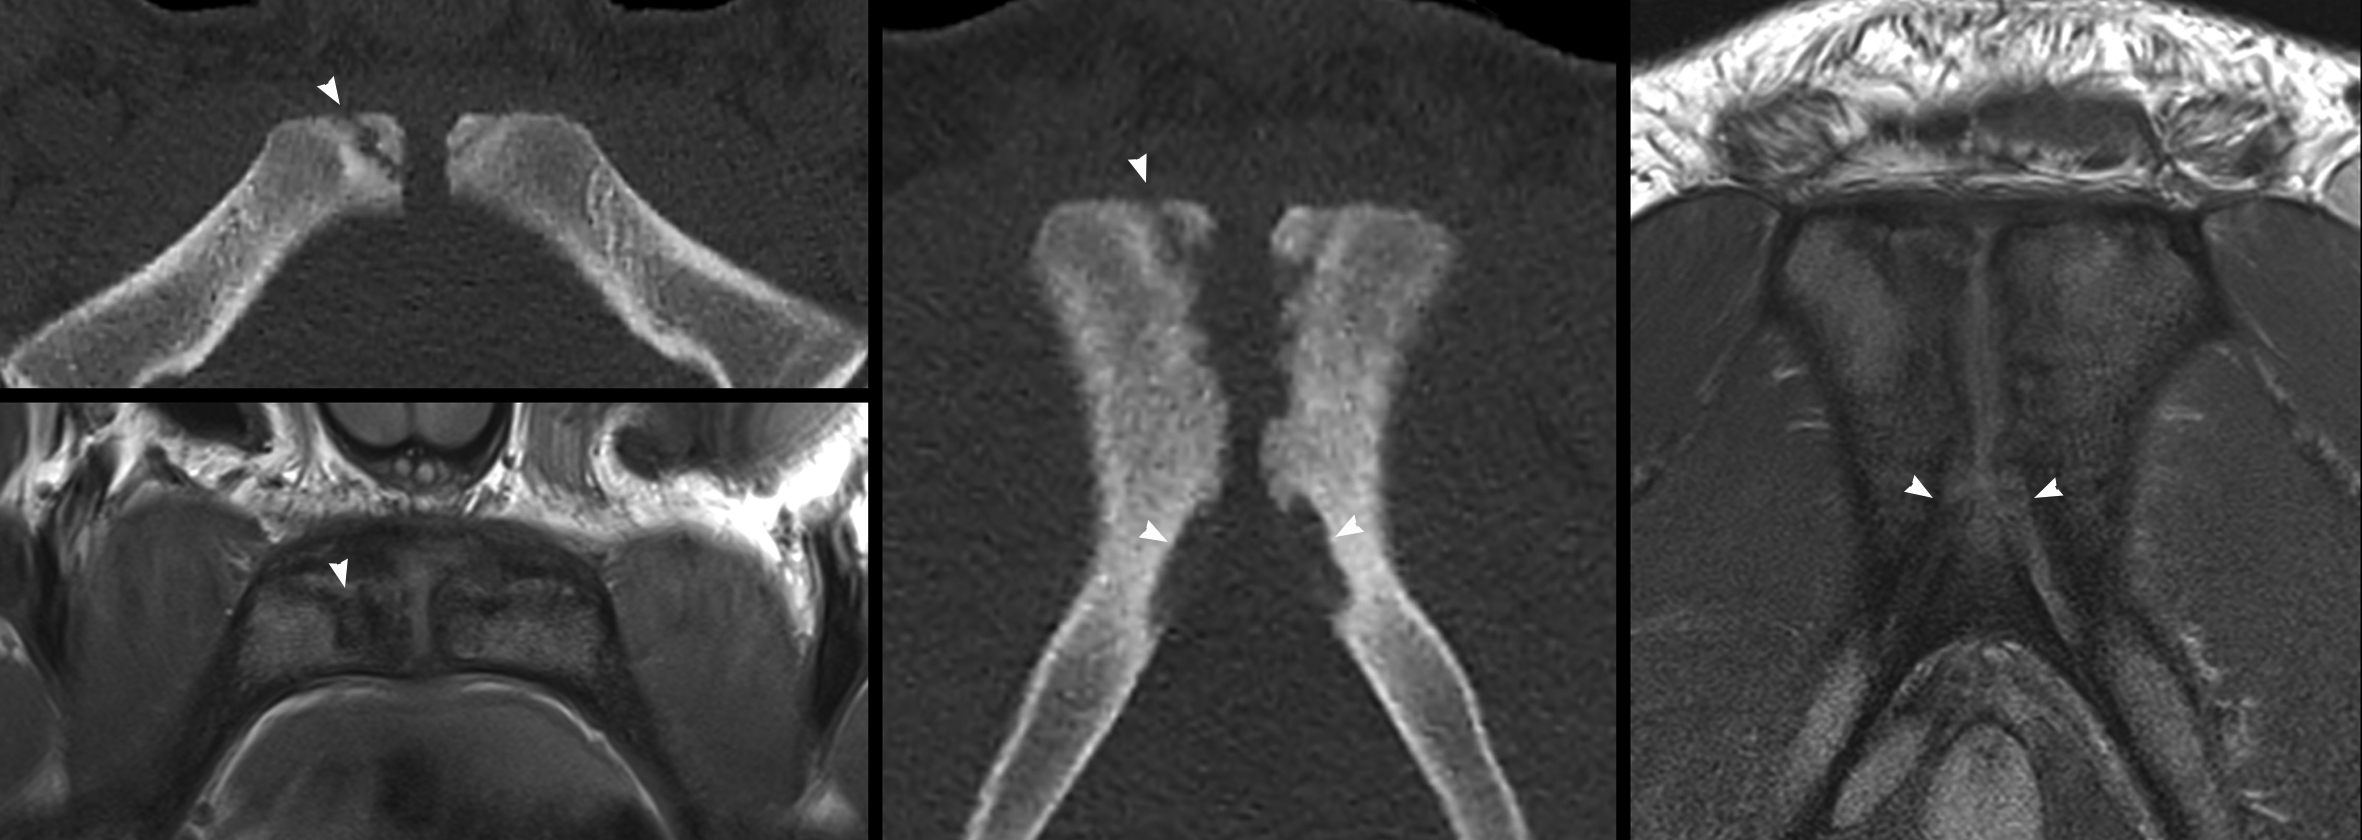 Fig 10. Bilateral pubic apophysitis. 20 year old male footballer with 2 months diffuse groin pain. Axial and coronal CT and matching PD-weighted MR images show irregularly widened physical plates at both pubic apophyses. Fat-suppressed MRI, not shown here, also demonstrated bilateral diffuse pubic marrow oedema.